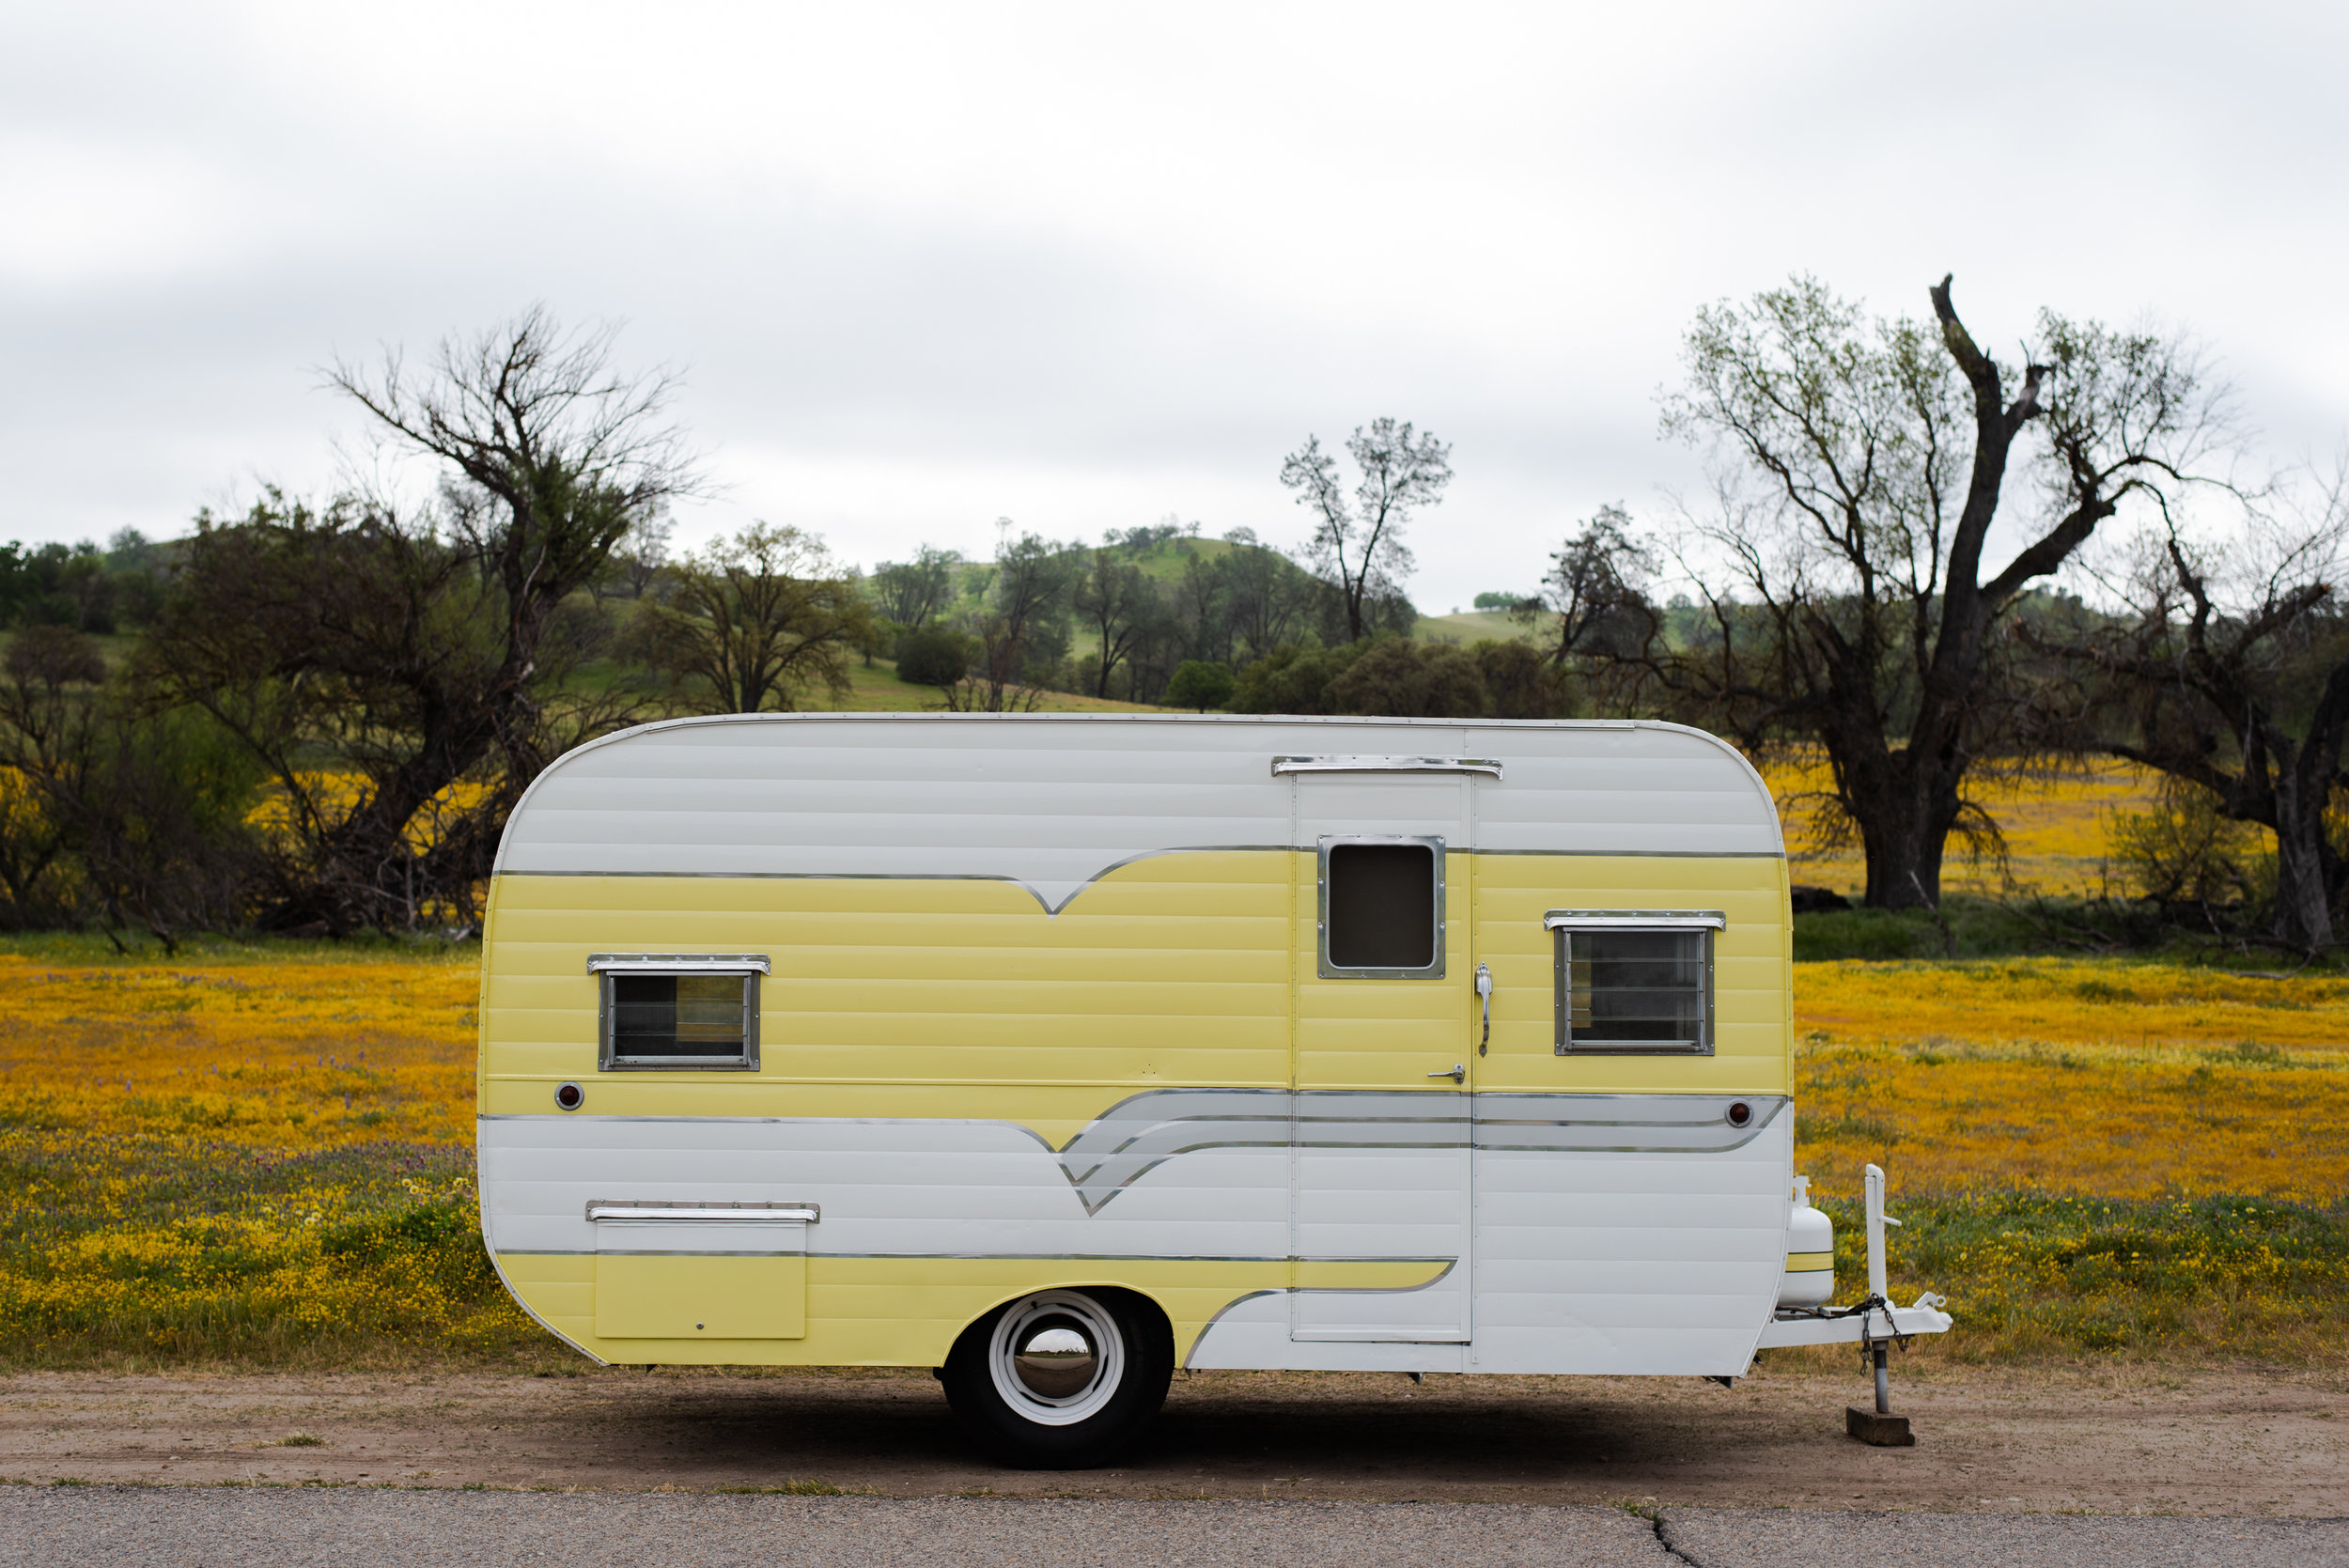 1956 Deville Yellow and White Camper Trailer